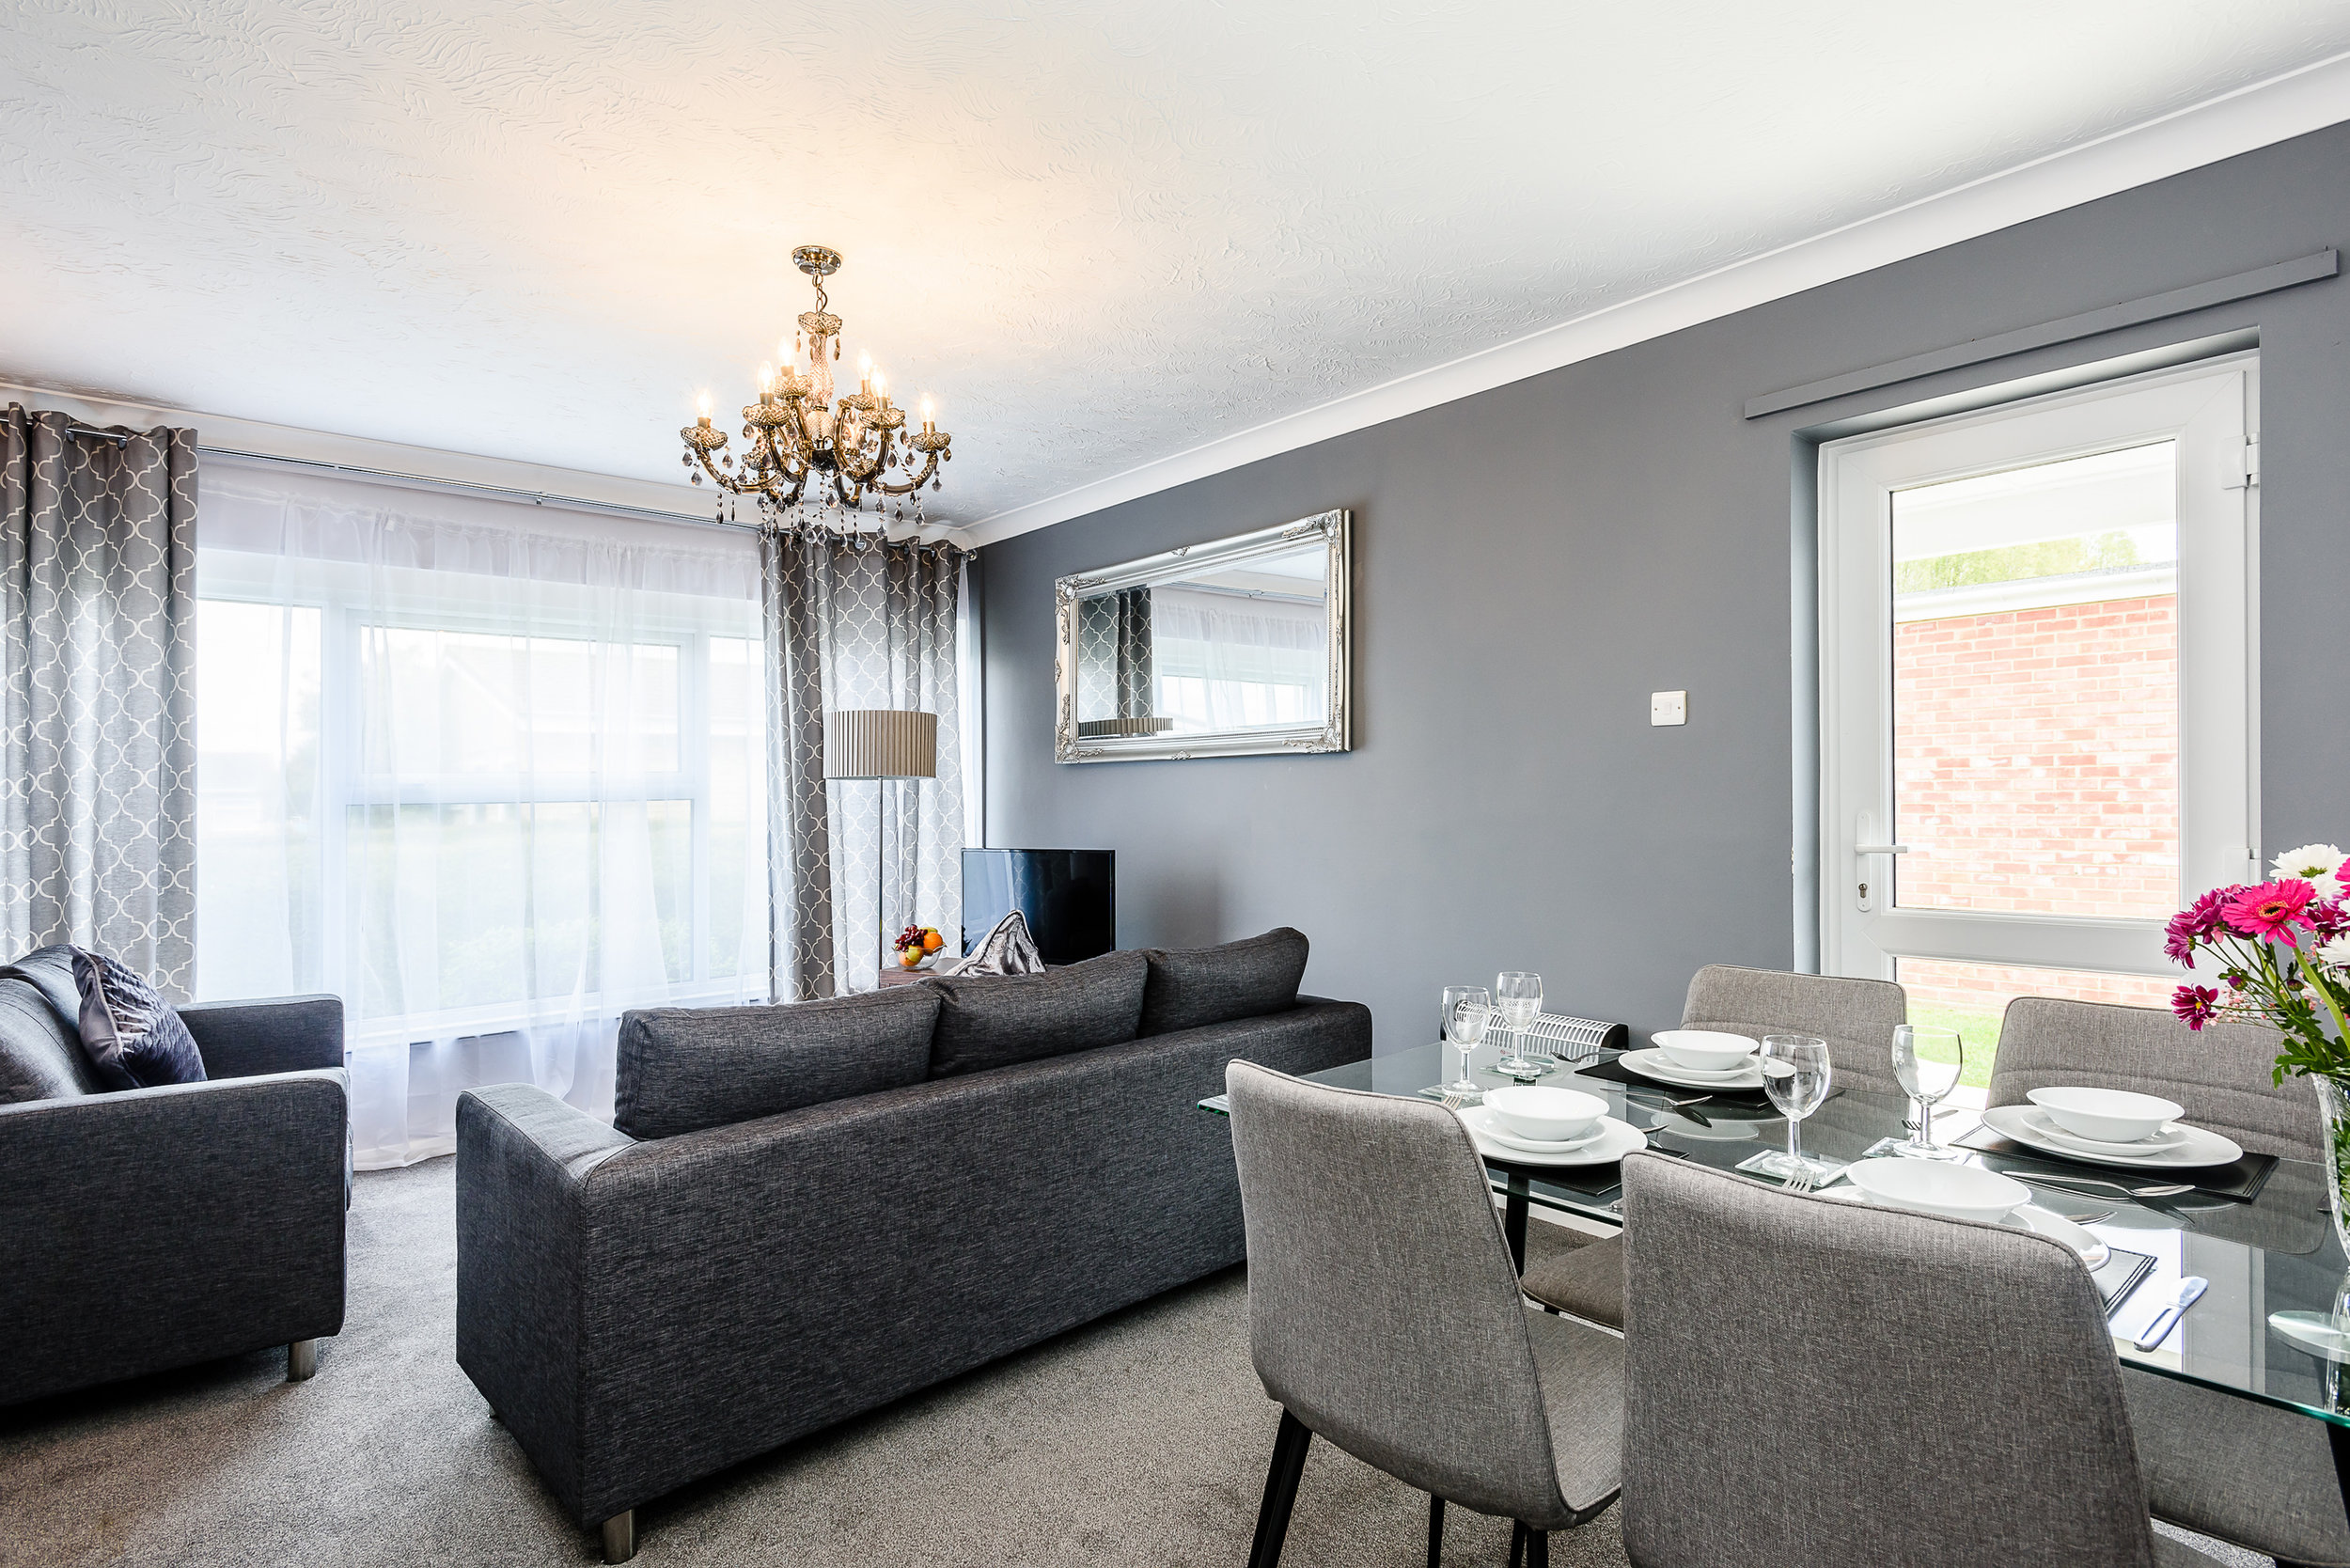 Above: A holiday villa for the modern day staycation - with recent investment in recent interior and exterior refurbishments at Tingdene Broadlands Park & Marina.